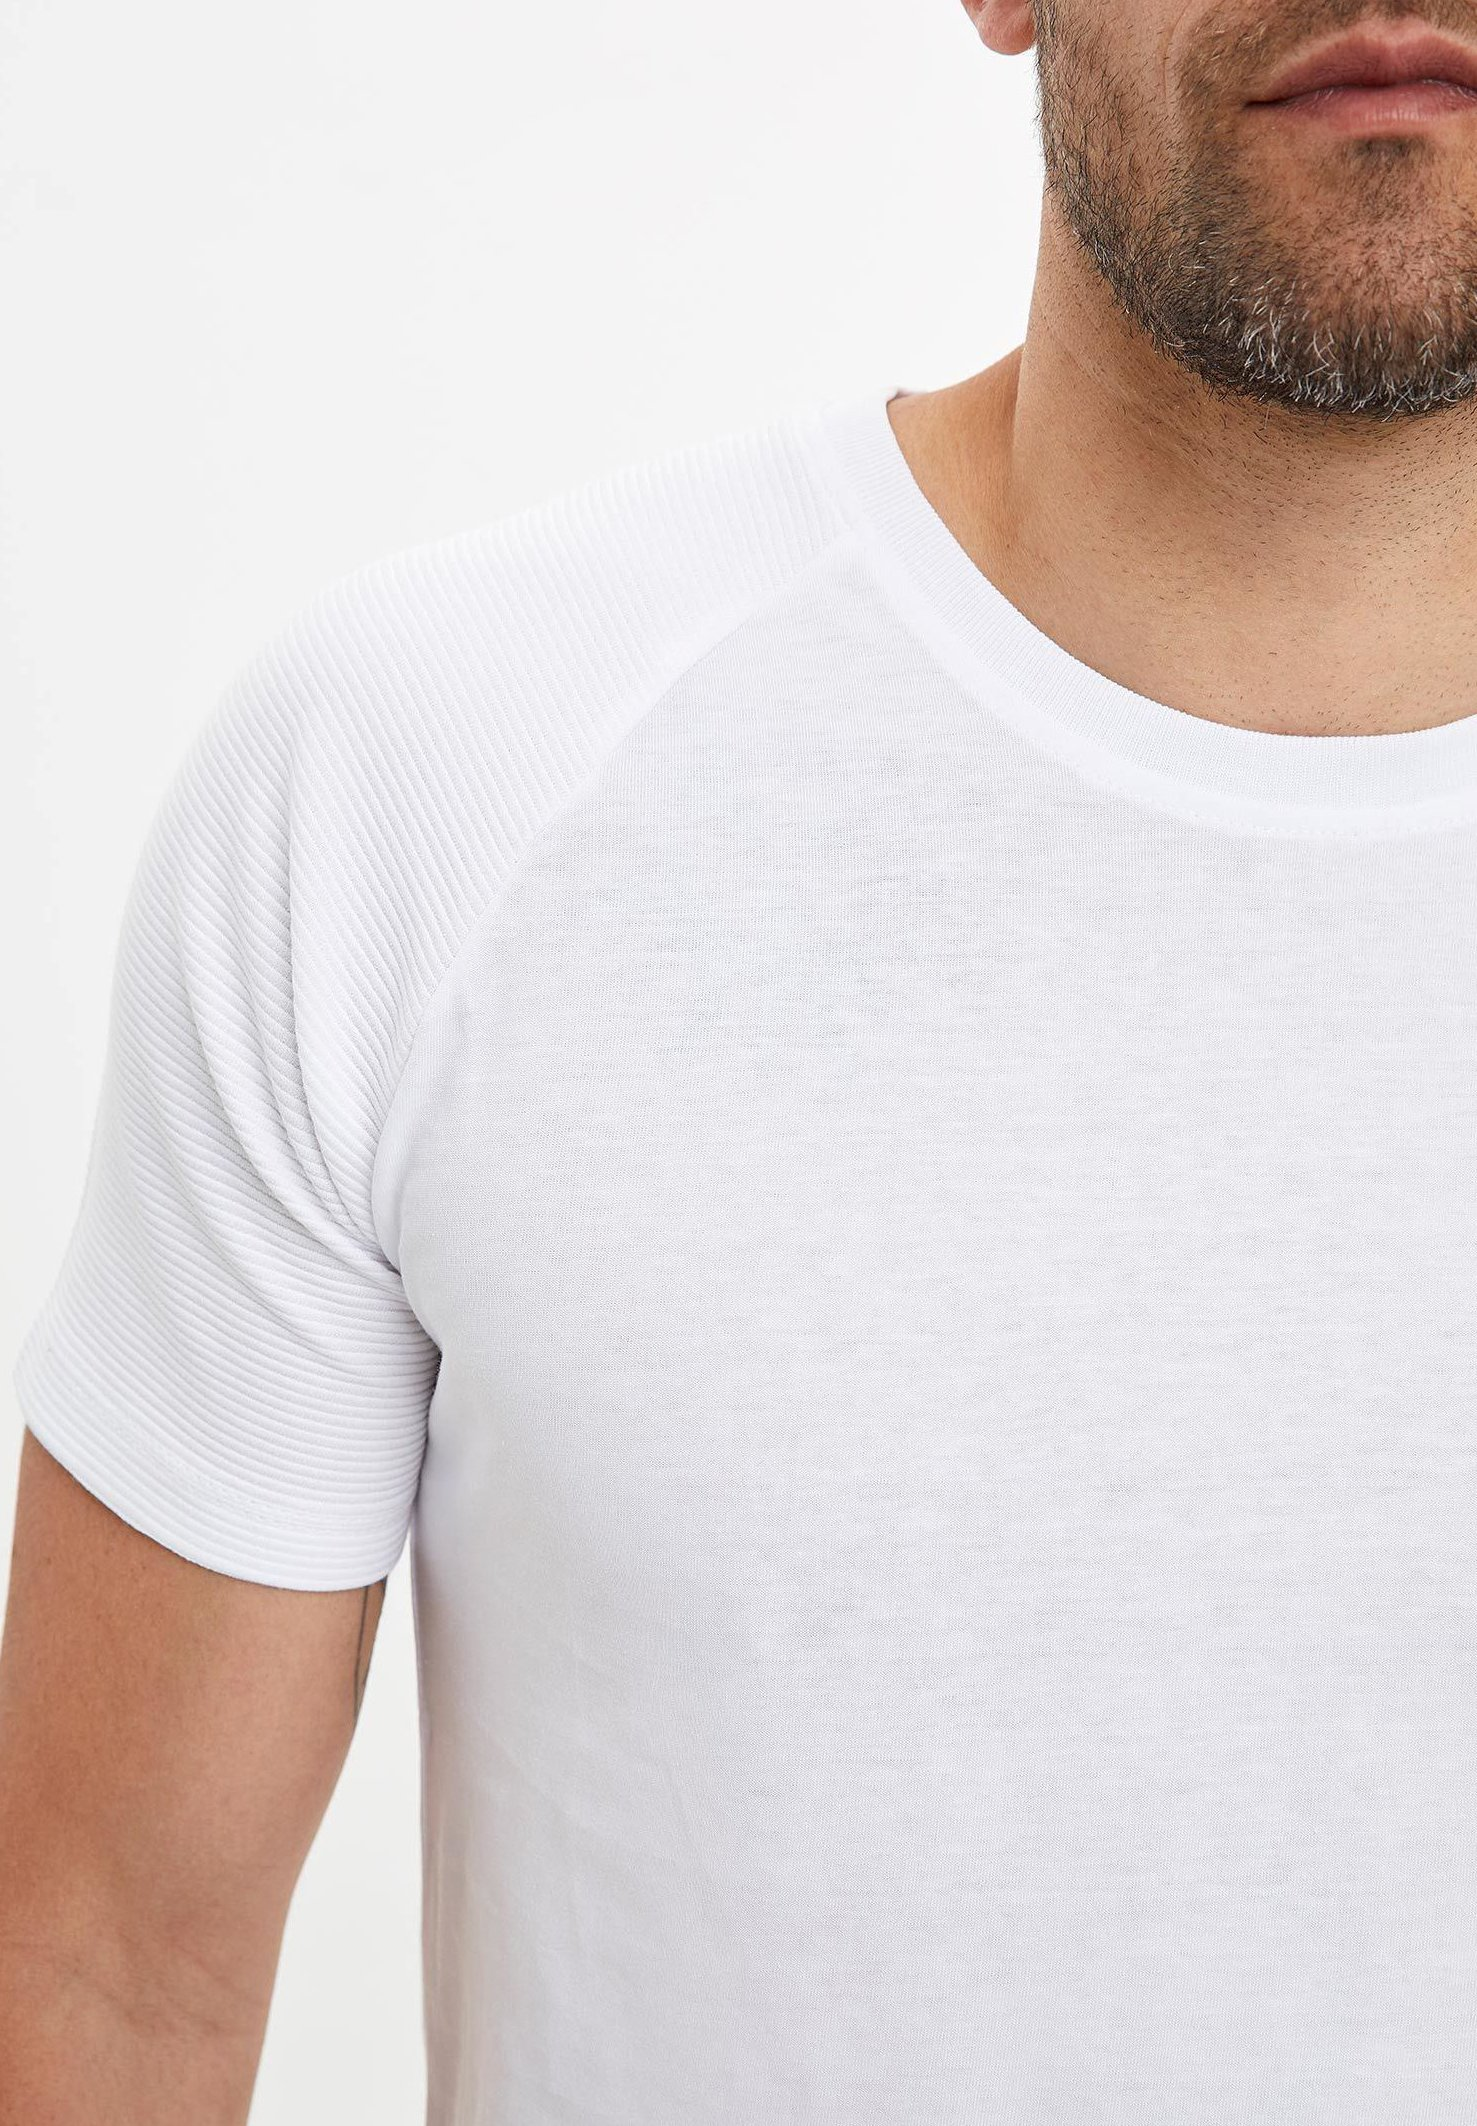 DeFacto Basic T-shirt - white yZQwT